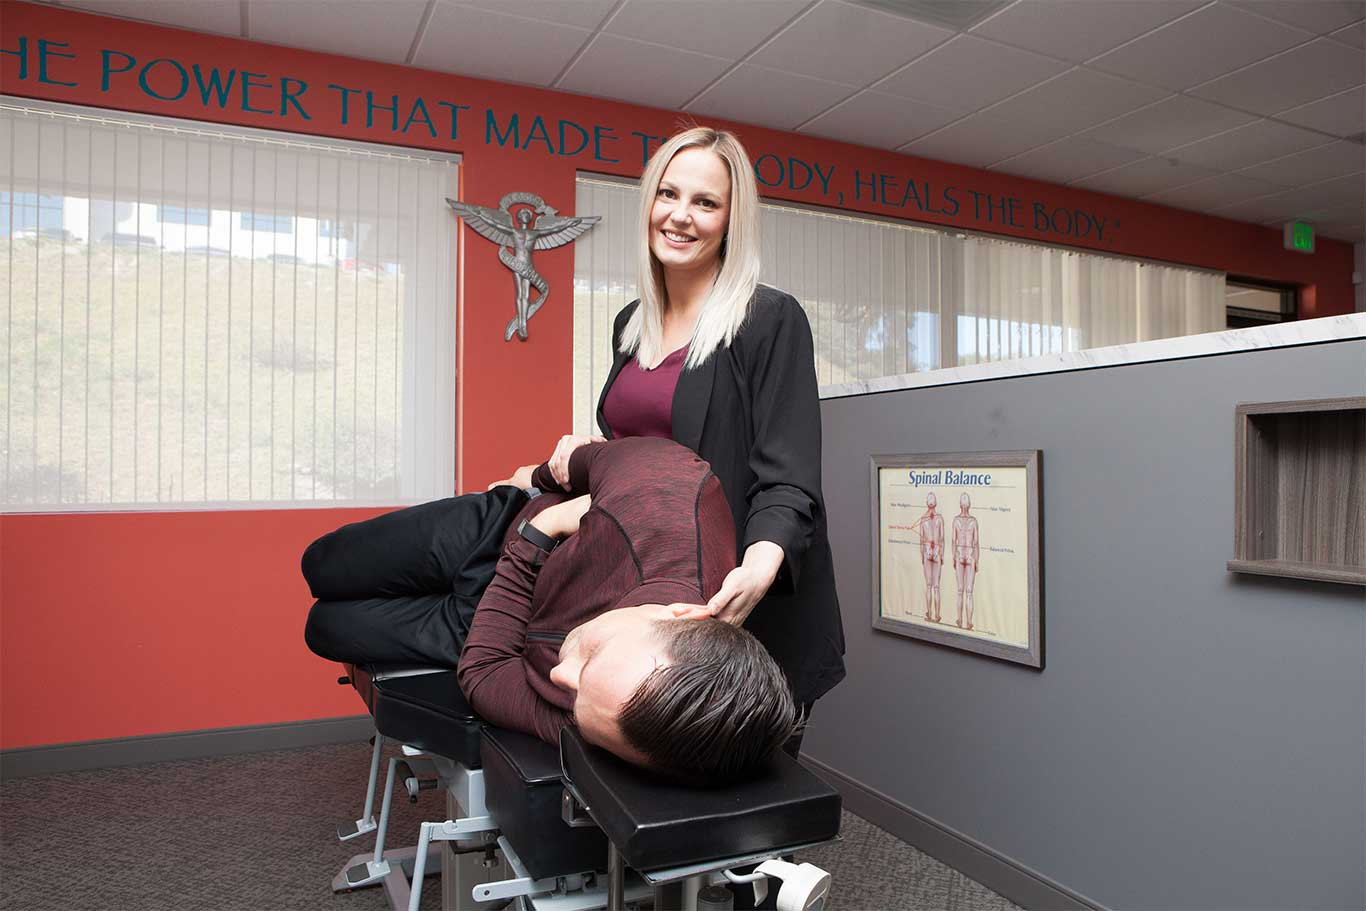 Upper Cervical Chiropractic Care from Family First Chiropractic in San Diego.